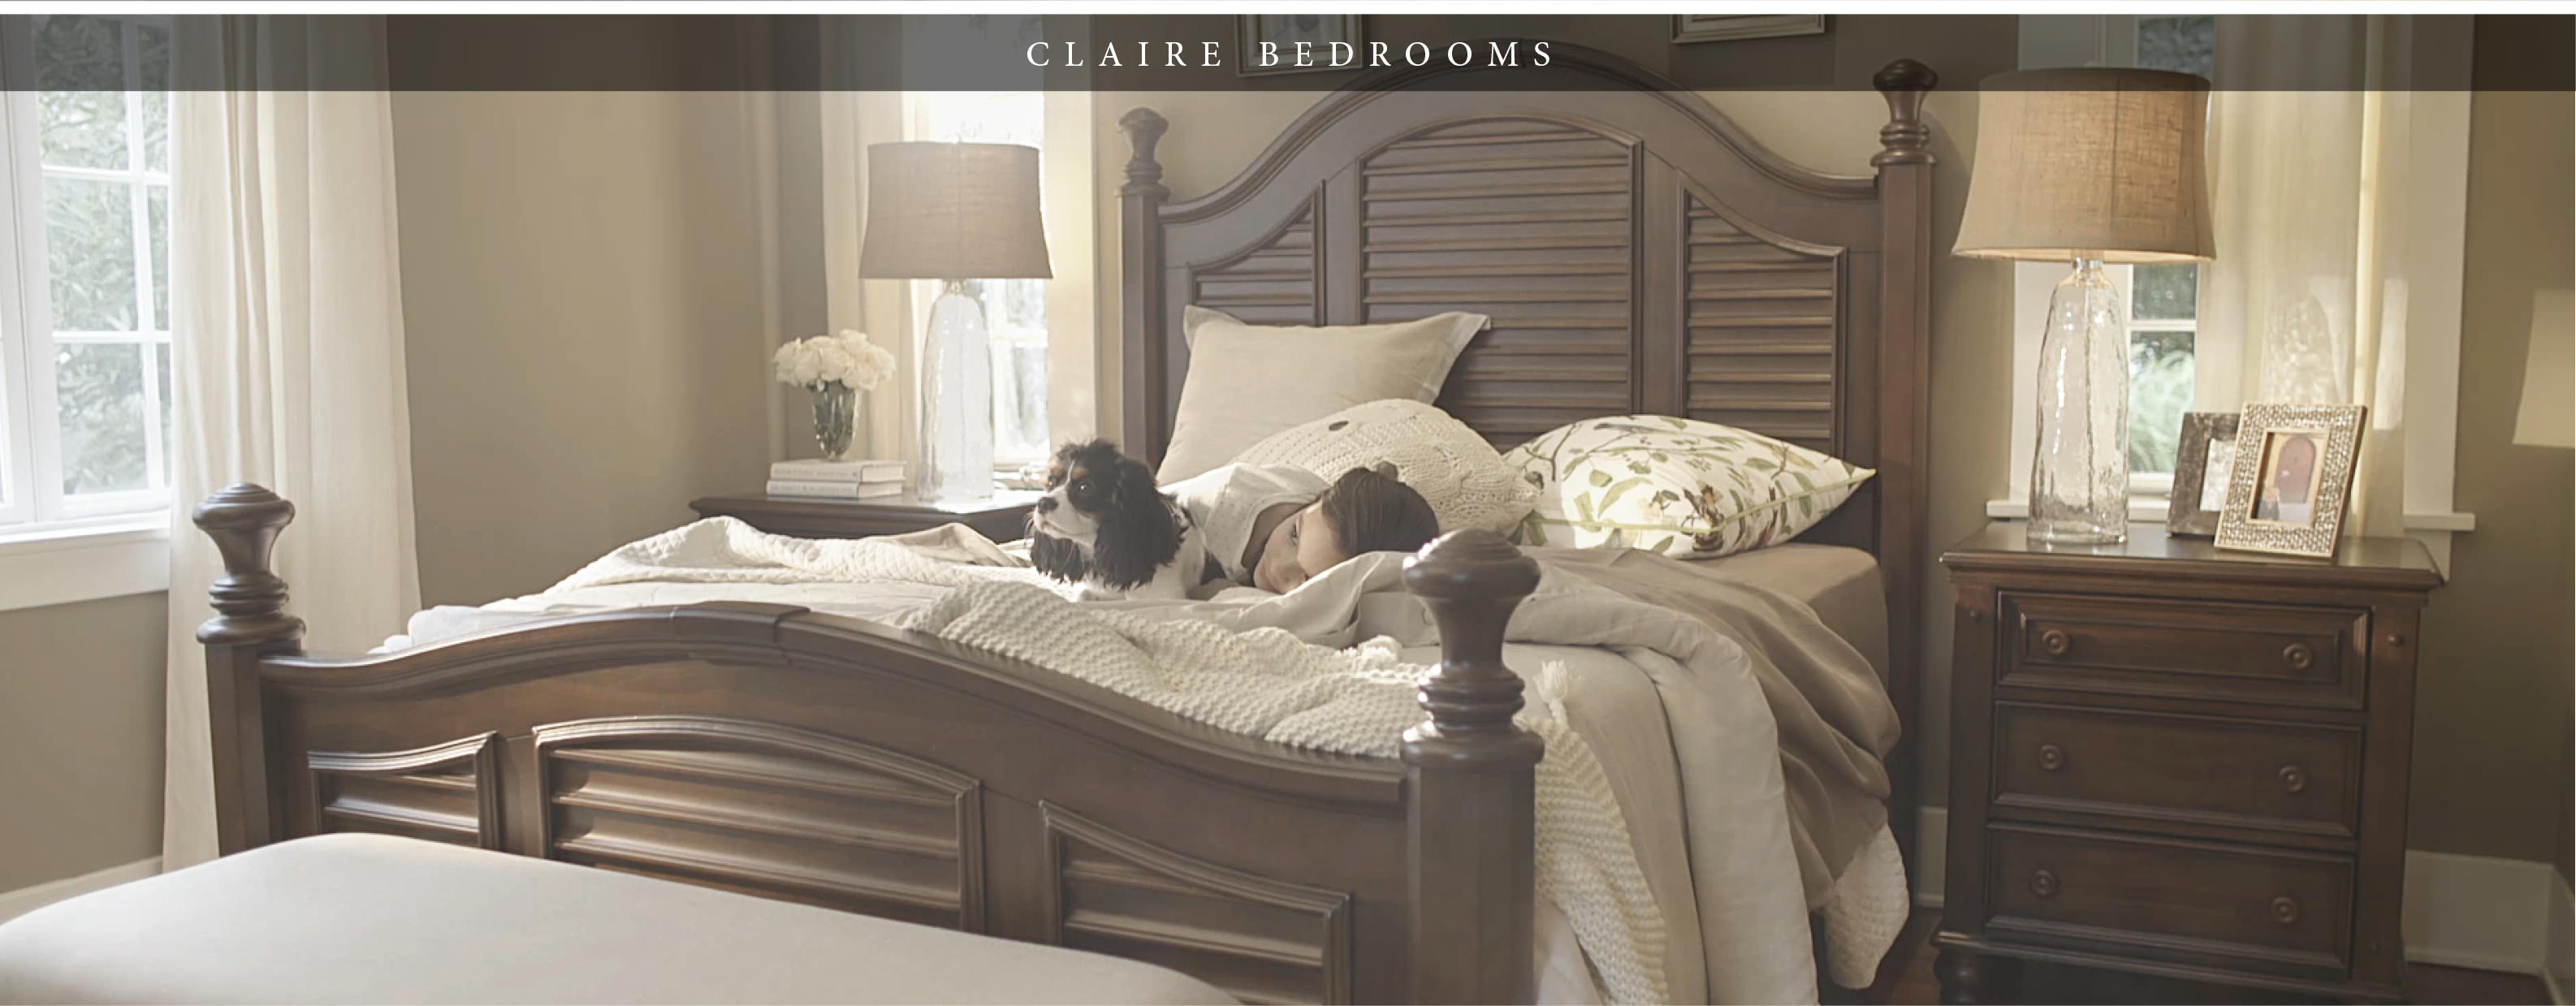 Claire Bedroom Furniture Collection